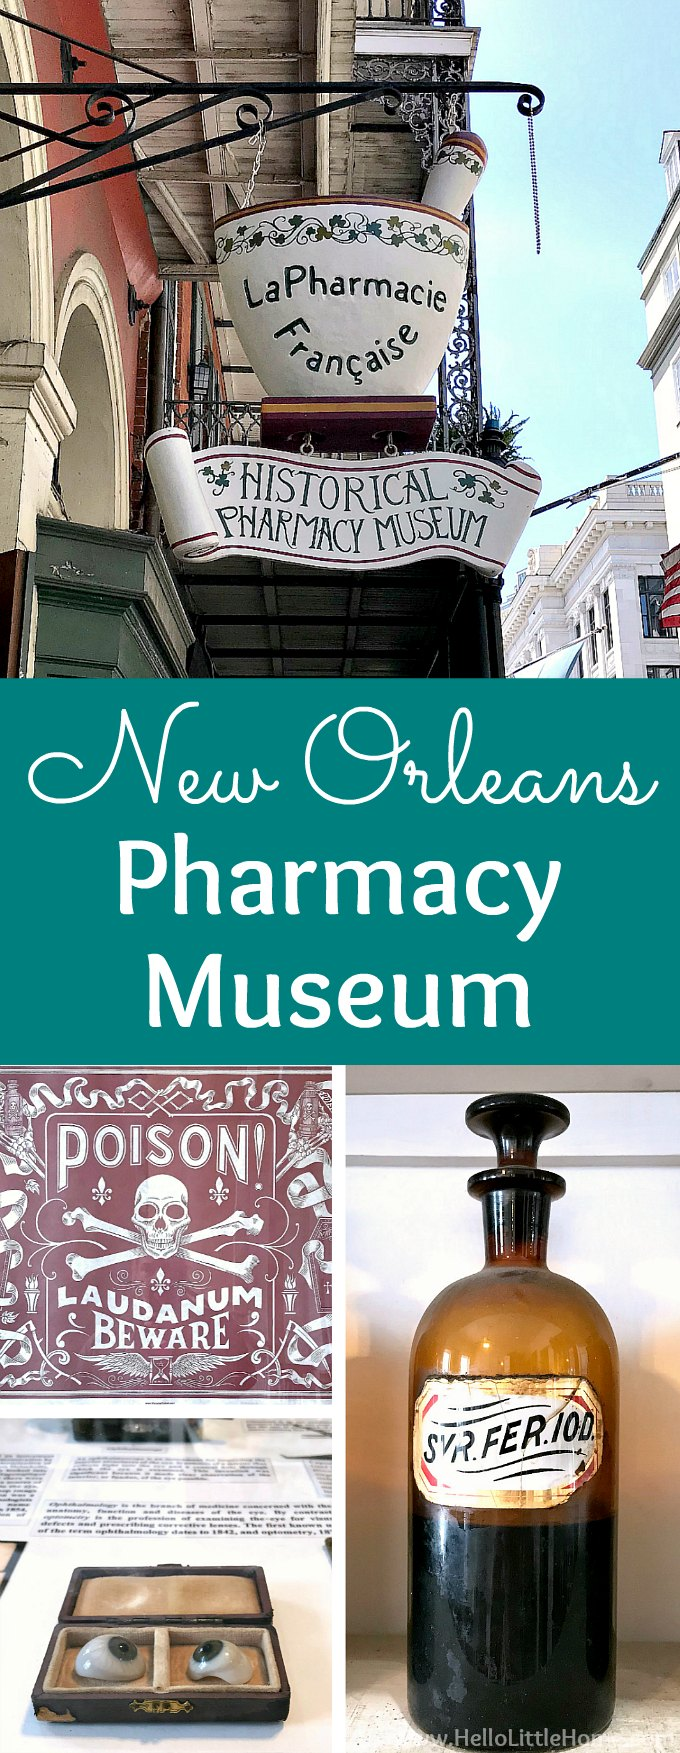 New Orleans Pharmacy Museum … add this New Orleans Museum to your French Quarter bucket list! The New Orleans Pharmacy Museum is one of the best things to do in the French Quarter New Orleans. This one-of-a-kind, historic museum tells the creepy, fascinating history of pharmacy and healthcare in NOLA, and it's one the best museums in New Orleans! | Hello Little Home #neworleans #nola #onetimeinnola #thingstodoinneworleans #pharmacymuseum #neworleansmuseums #frenchquarter #bigeasy #travelnola